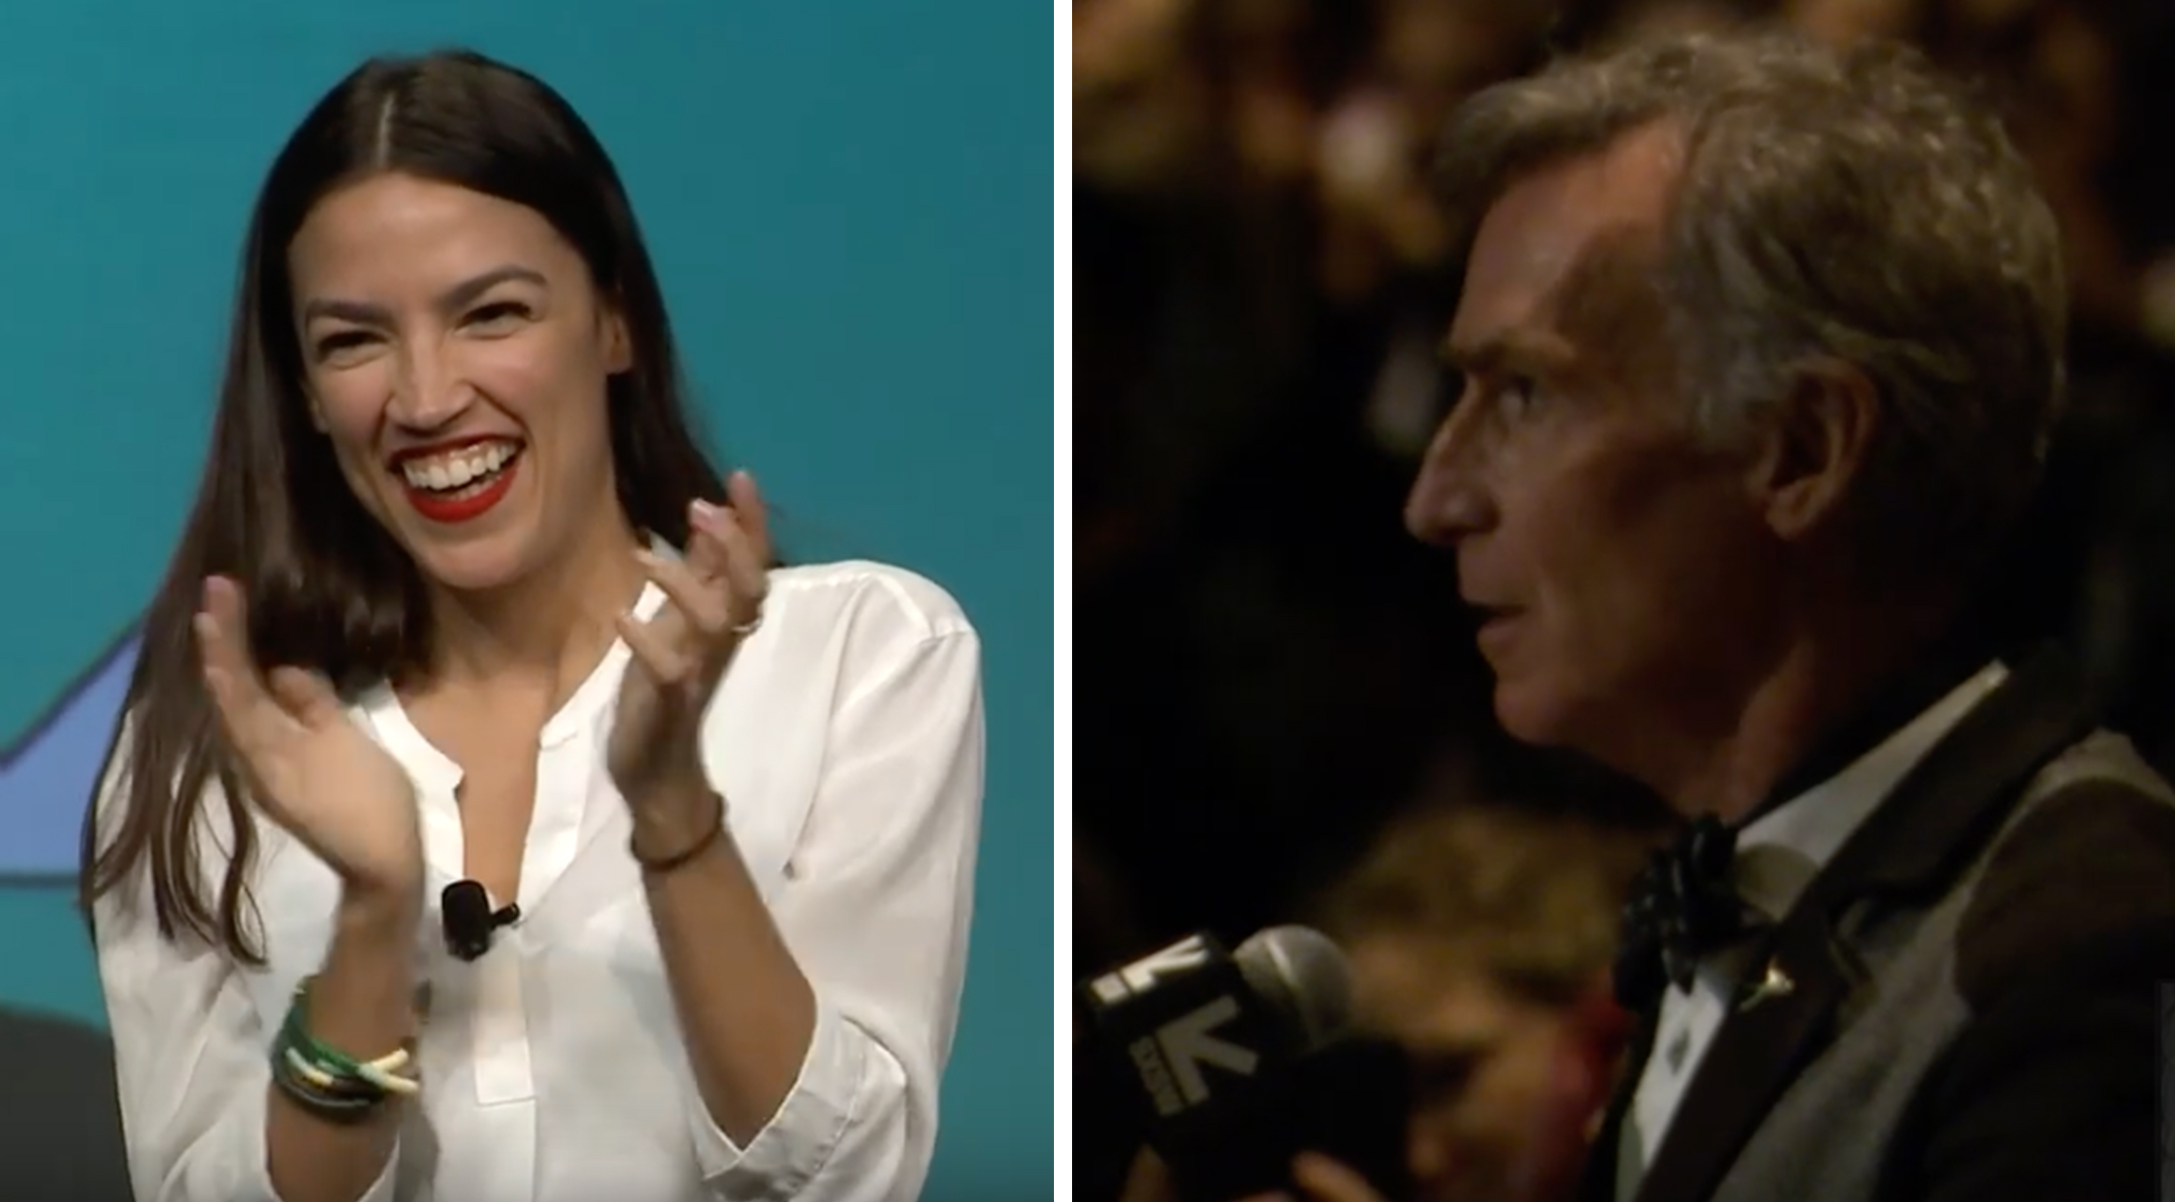 Bill Nye surprises AOC at SXSW, asks about overcoming fear